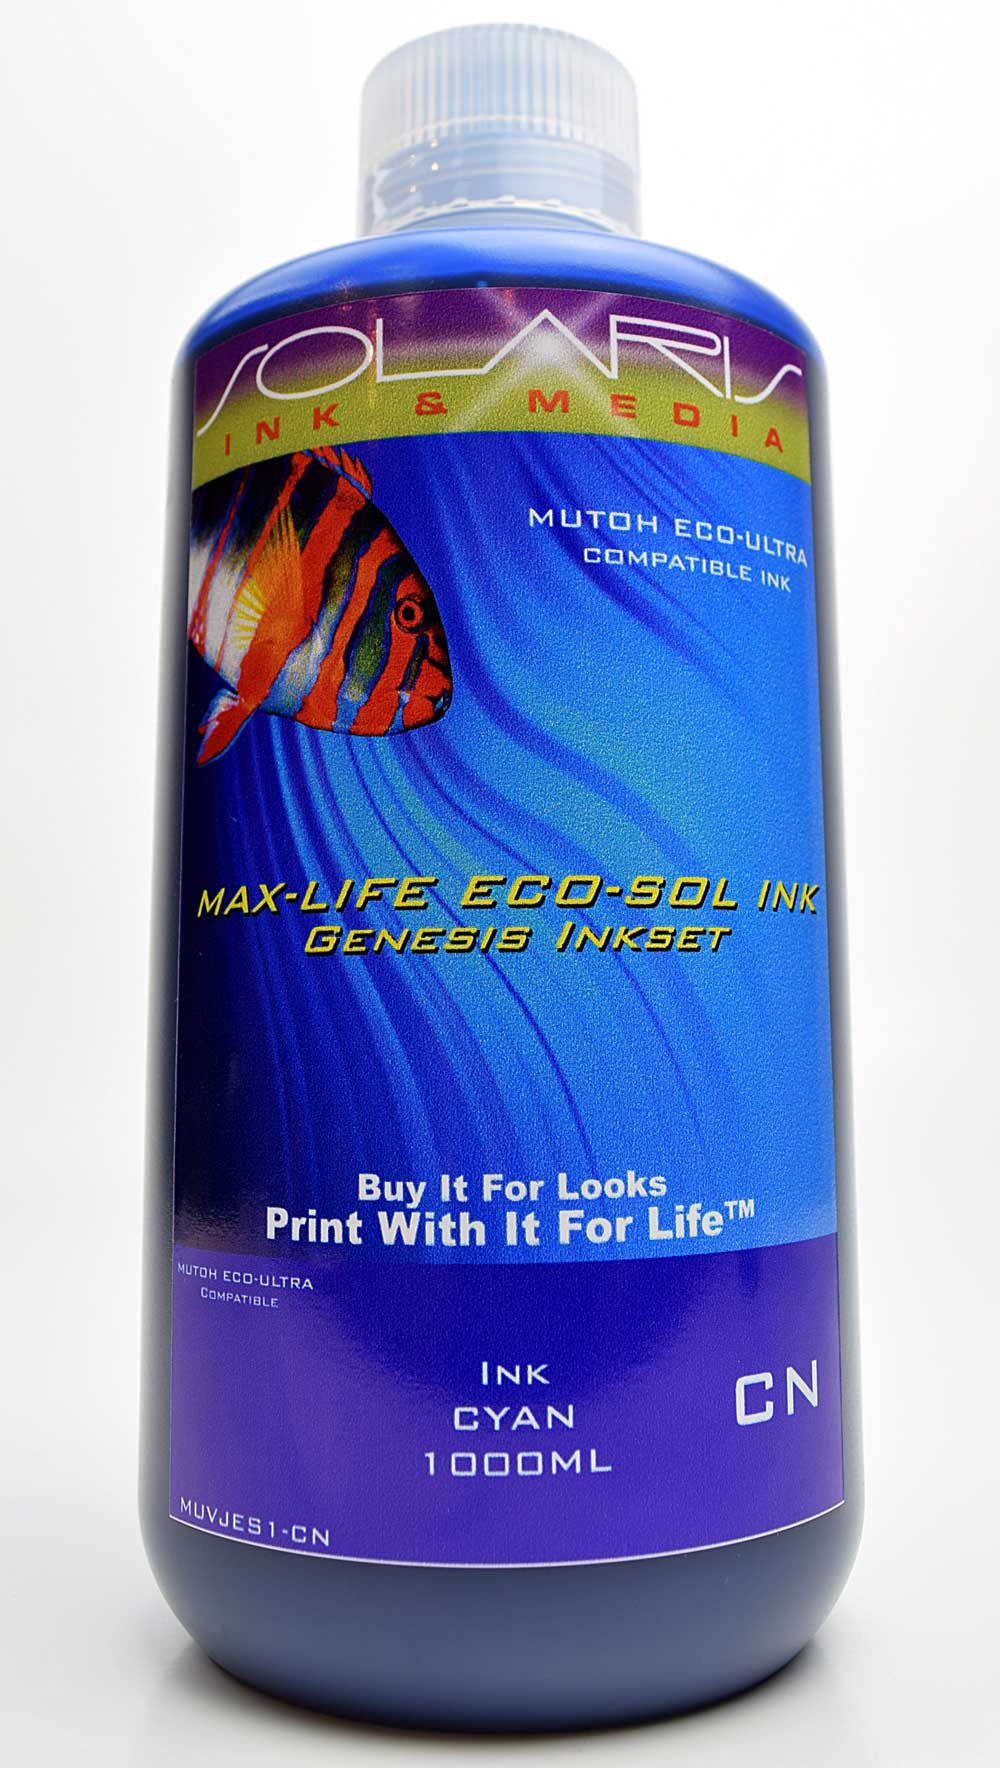 Mutoh Eco-Ultra Ink Cyan 1 Liter